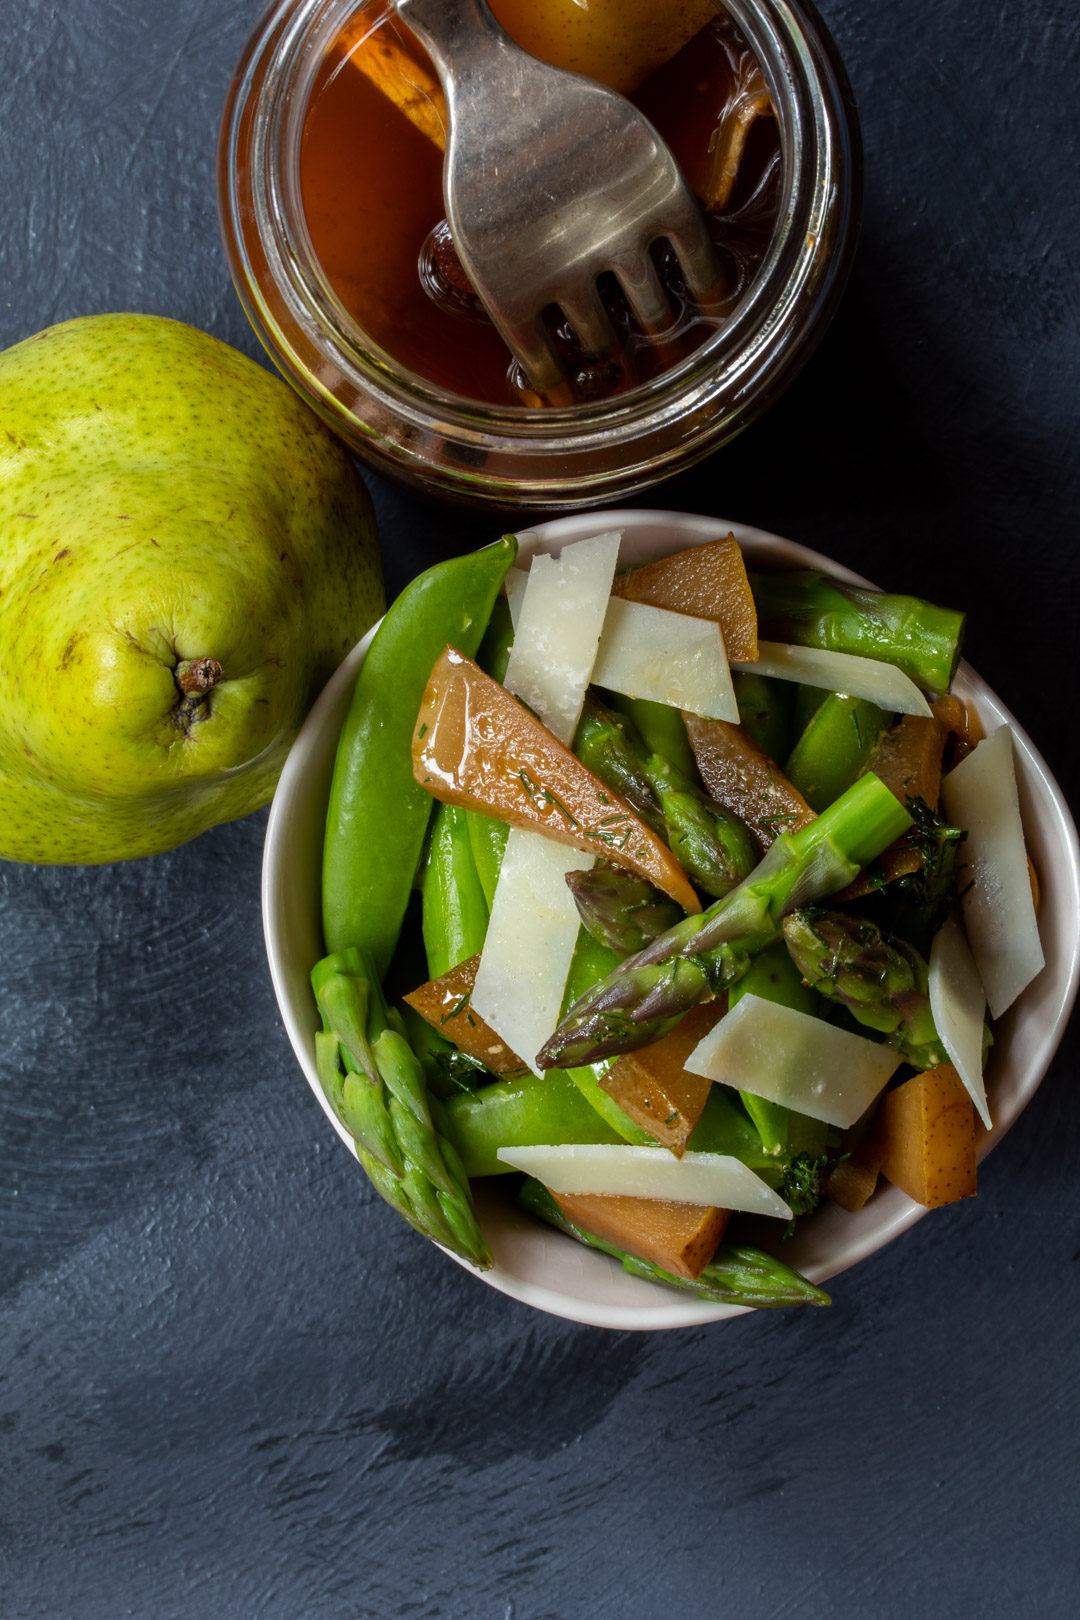 Asparagus and sugar snap pea salad with pear pickle: from above